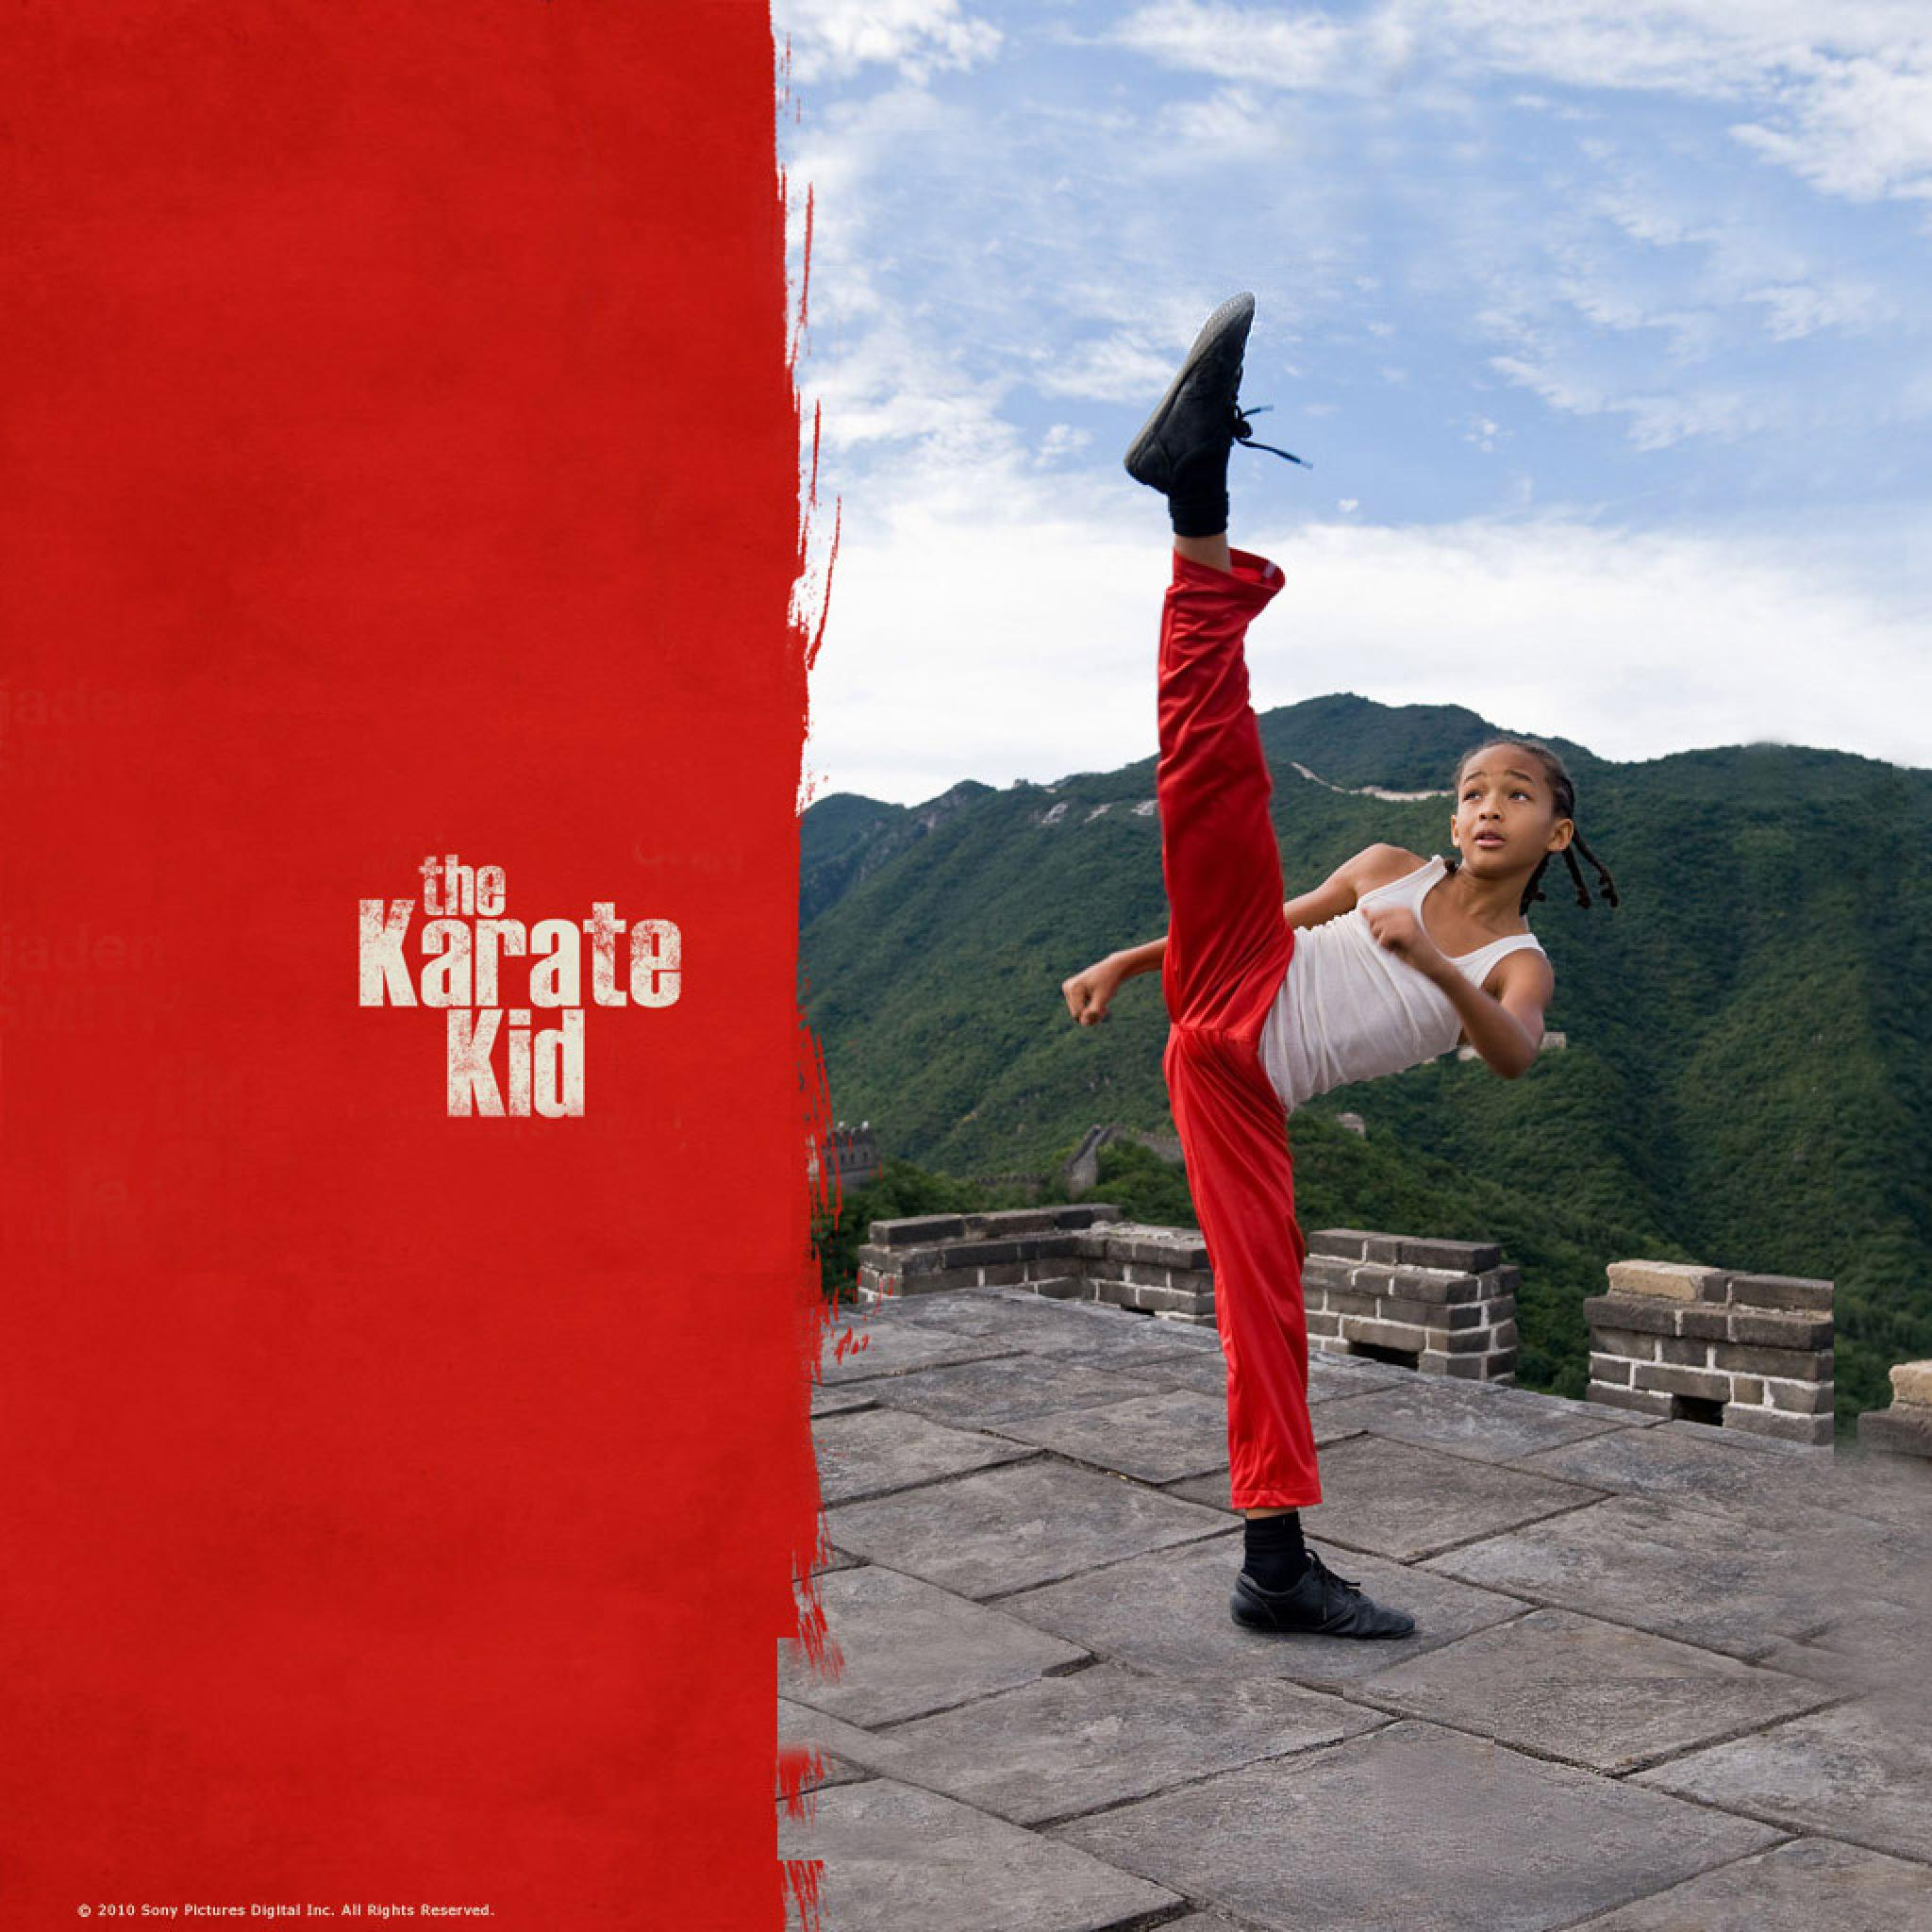 Karate Kid Hd Wallpaper Movies Tv The Karate Kid Ipad Iphone Hd Wallpaper Free